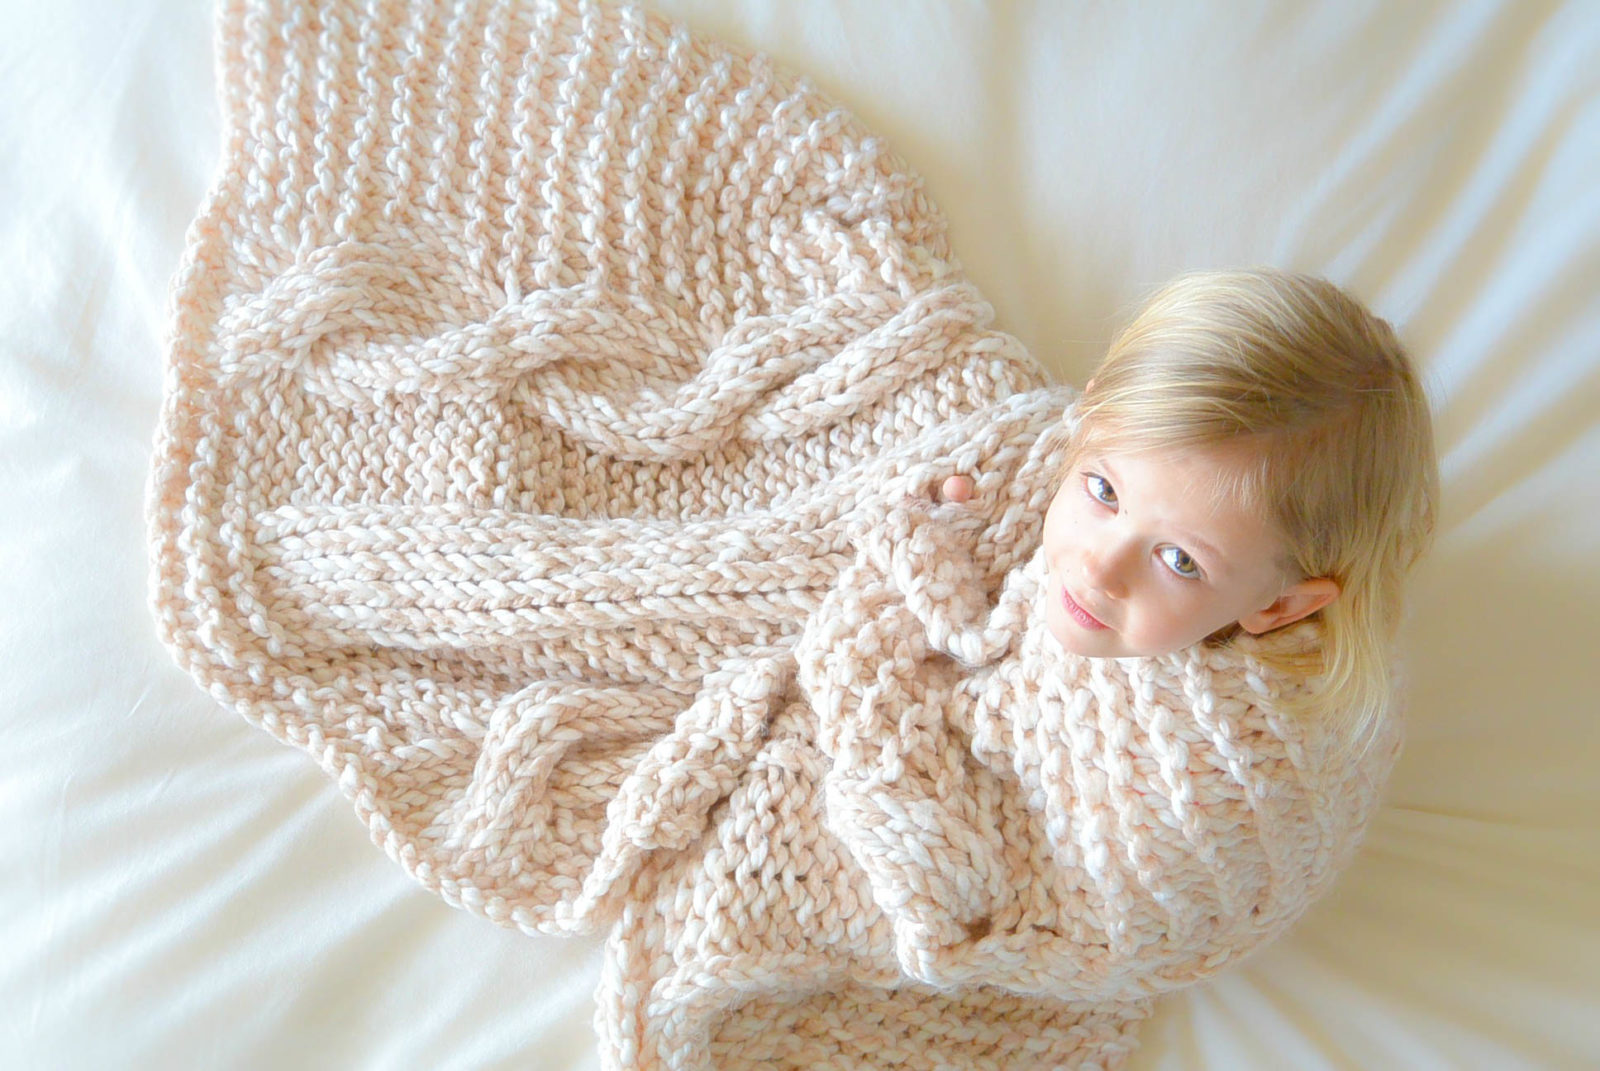 Chunky Knitting Patterns : Endless cables chunky knit throw pattern mama in a stitch